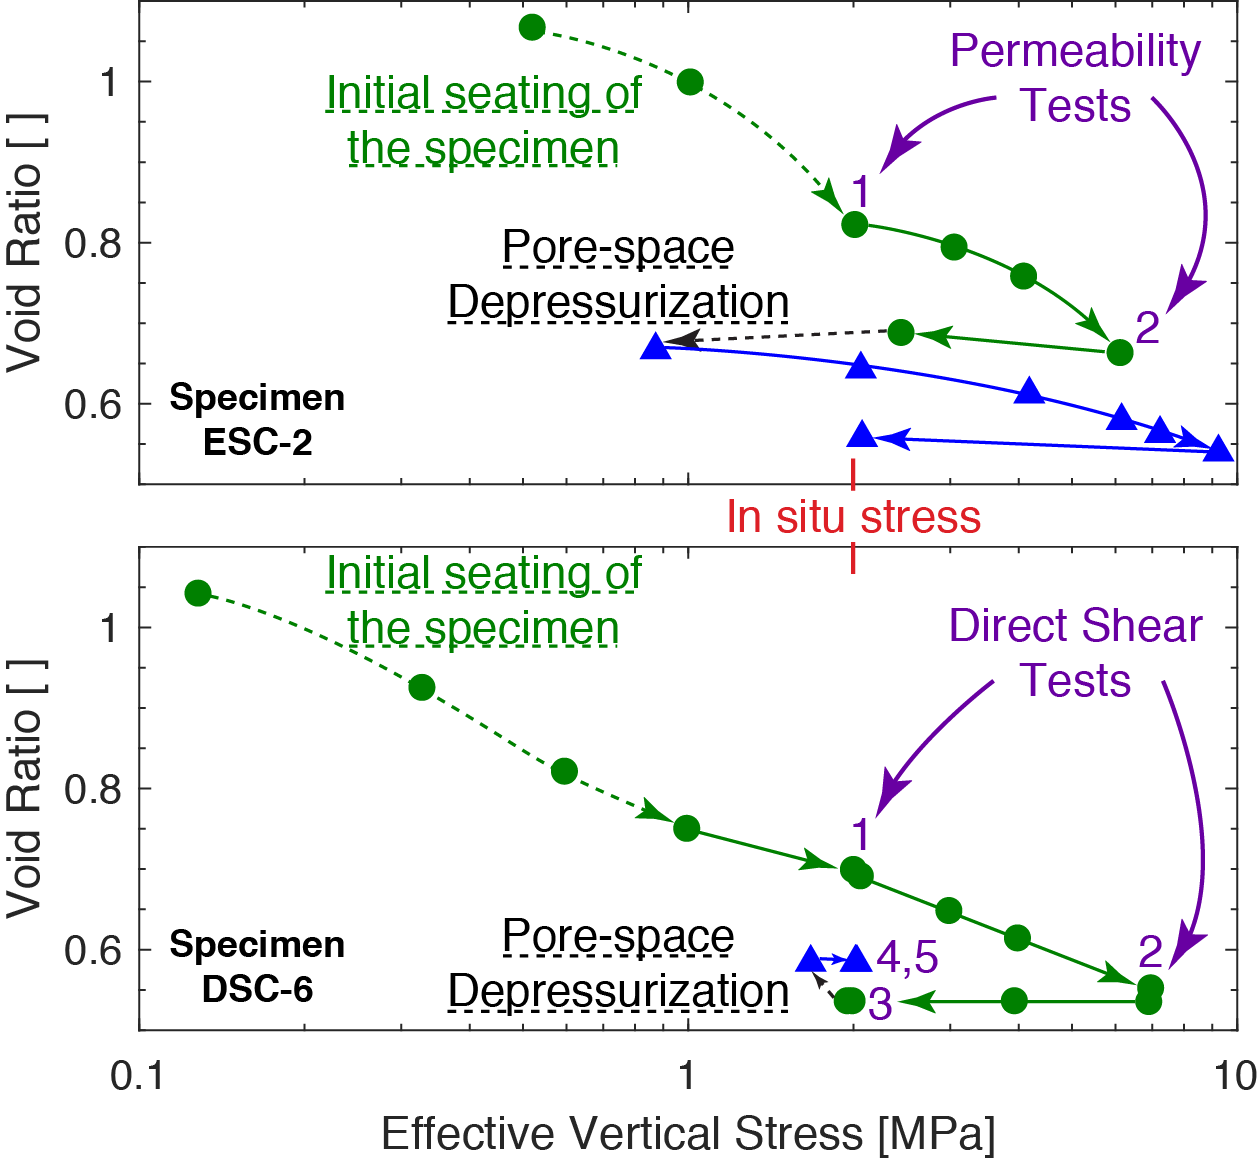 PCCT test sequence (arrows) showing permeability and shear strength test conditions during consolidation testing.